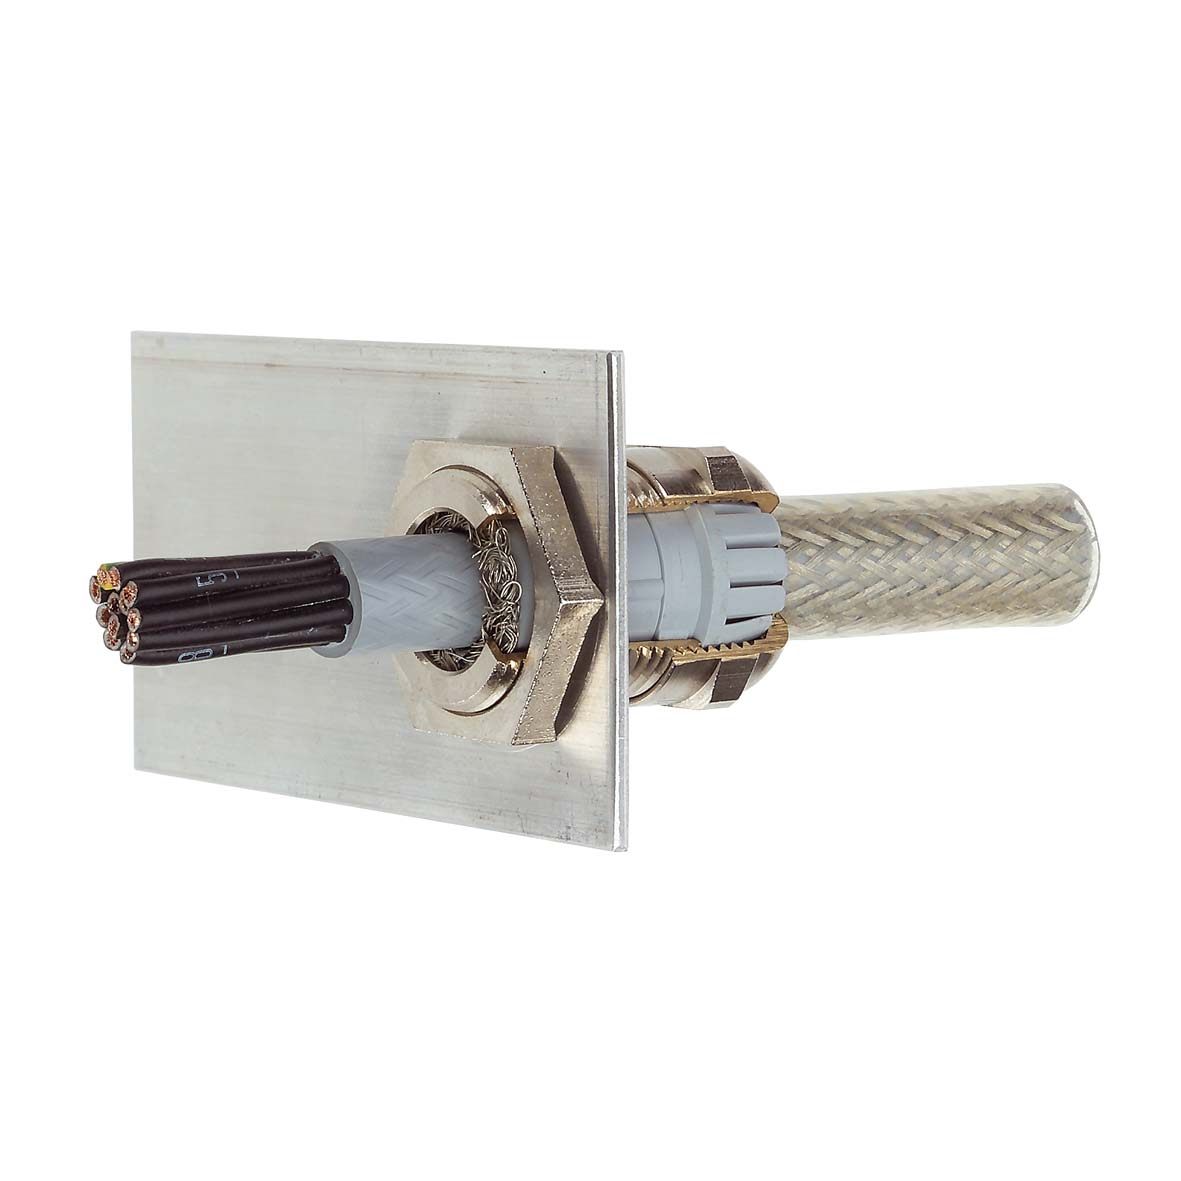 Cable Gland Stainless Steel Ip68 Emc Metric